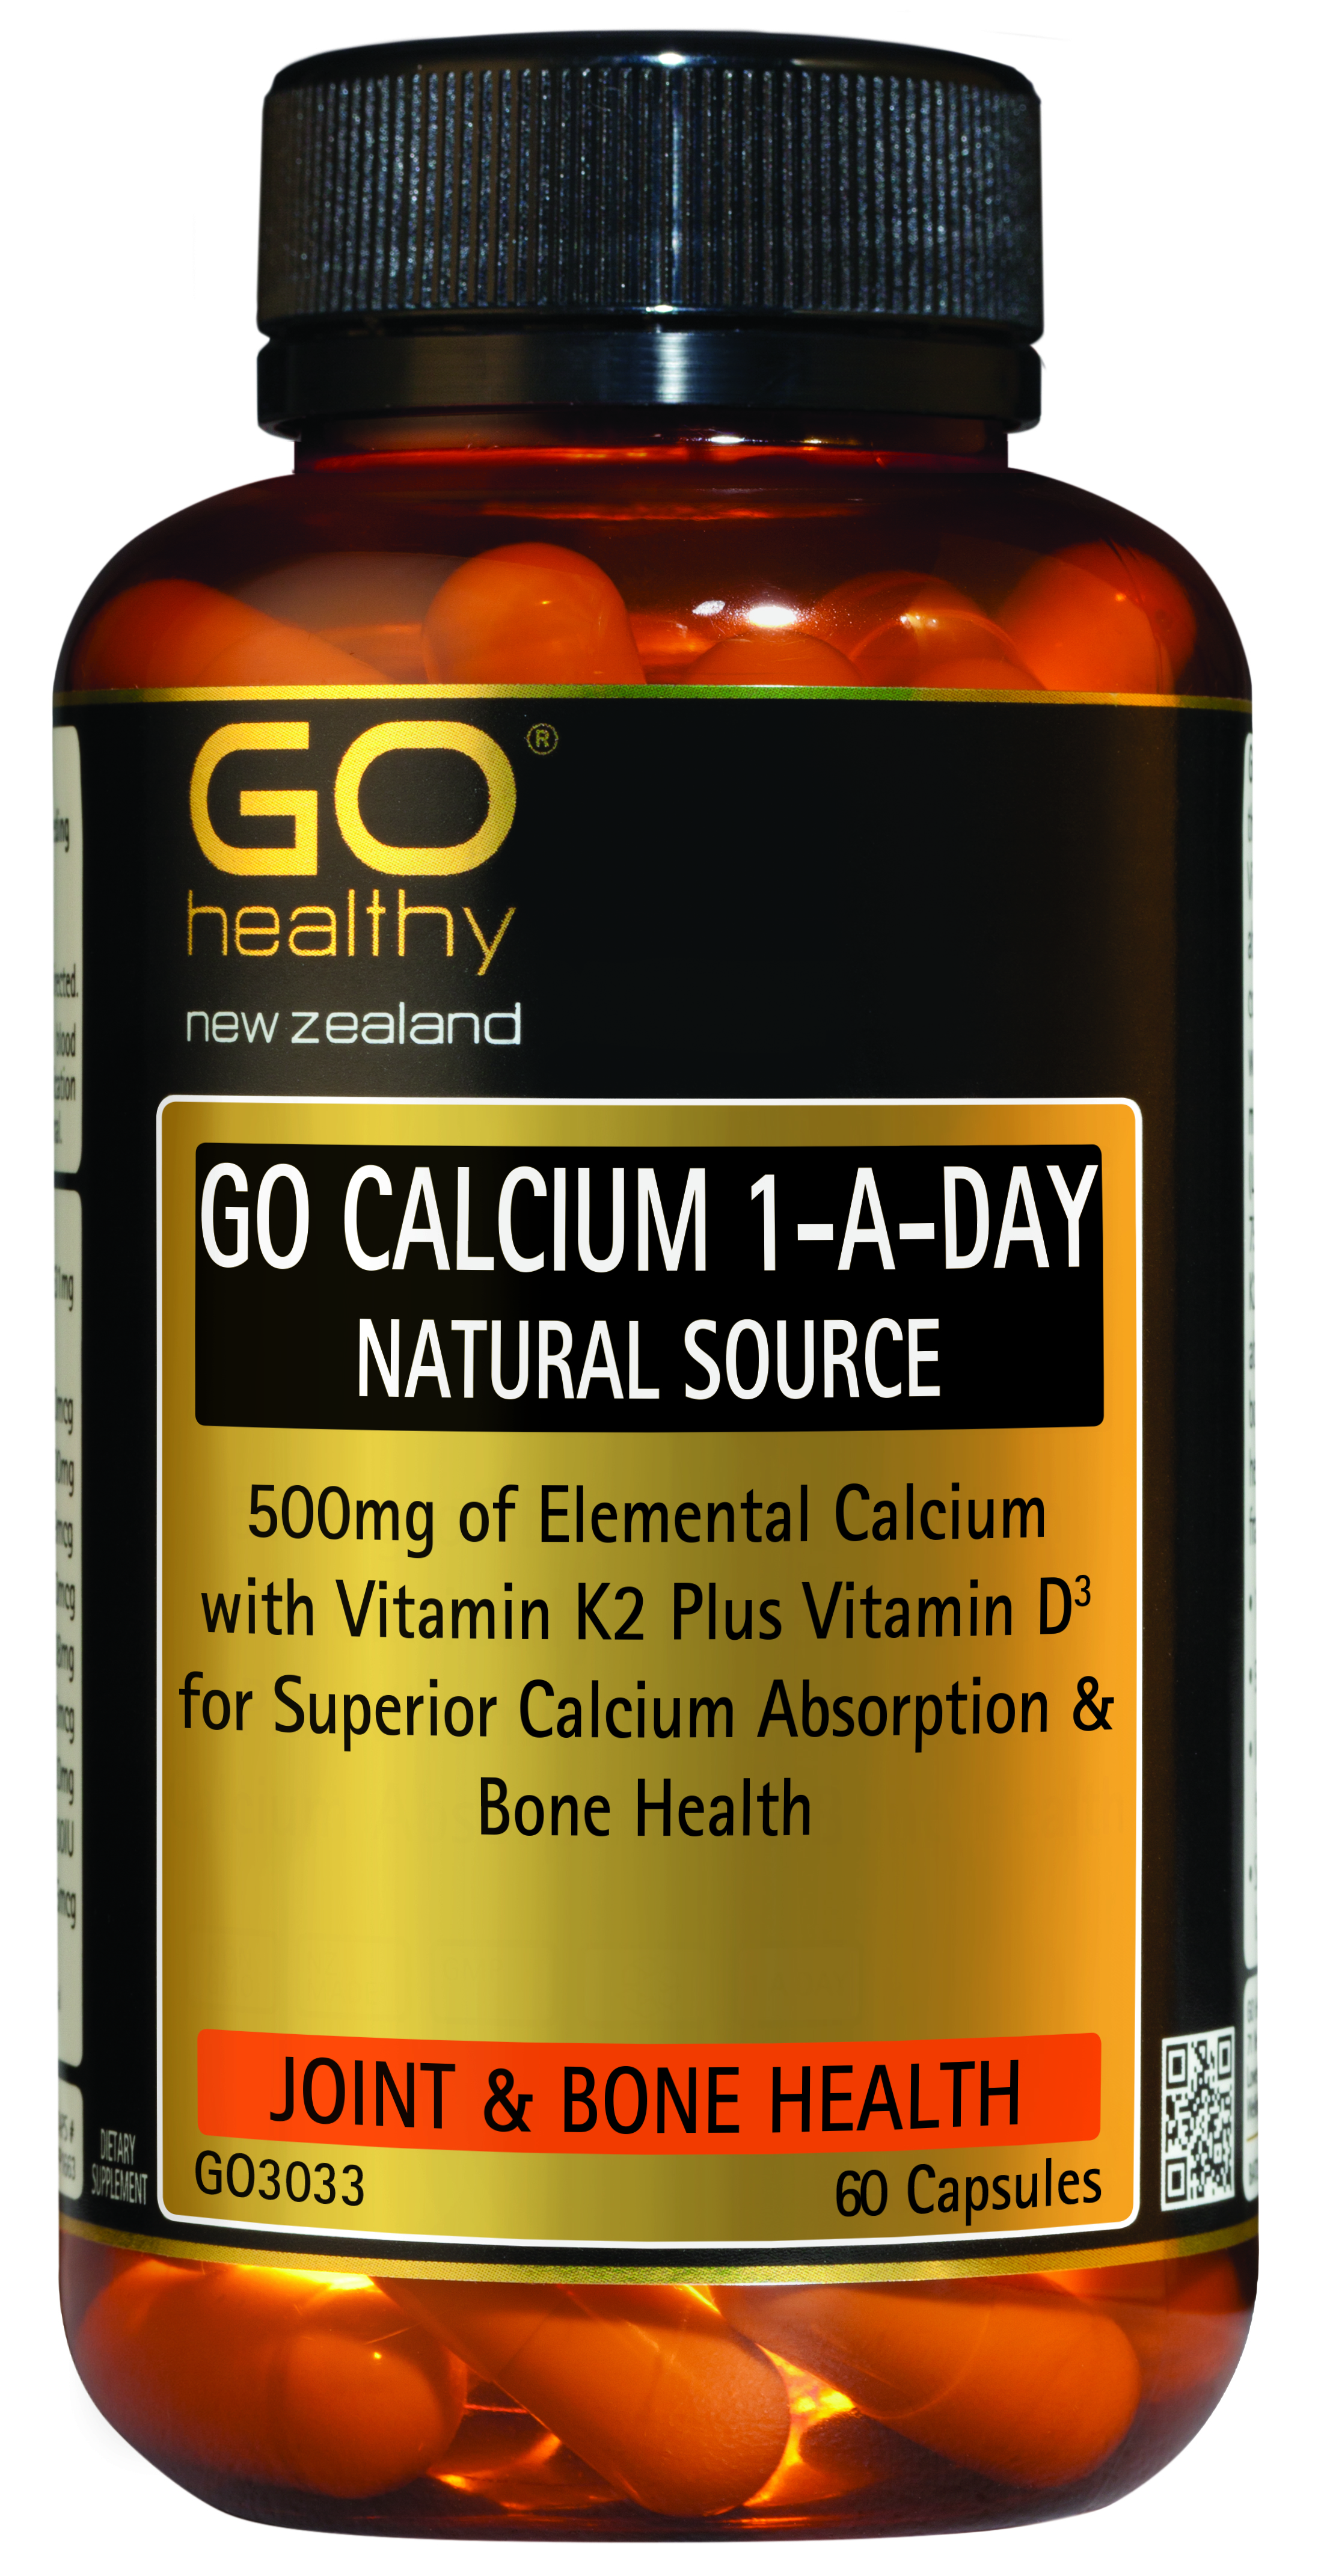 GO Healthy Calcium 1-A-Day 60 Capsules